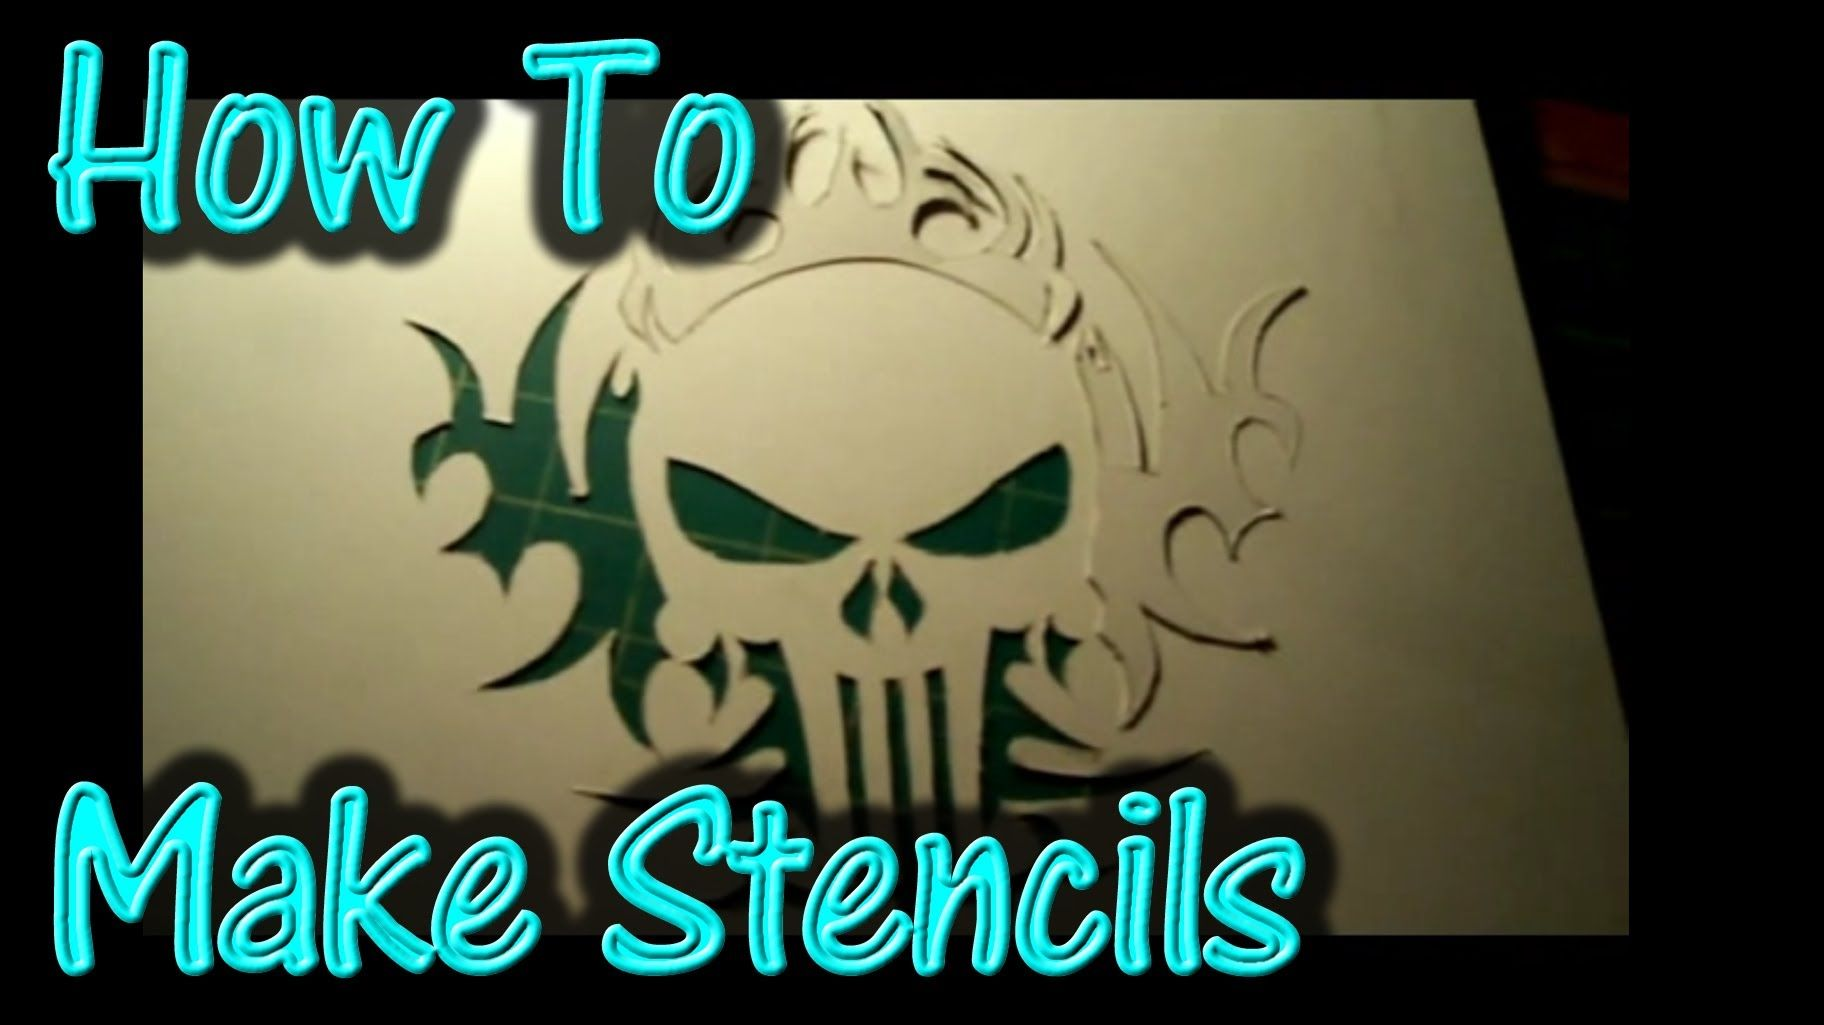 Airbrush Stencils - DIY - Make your own at home! | Projects